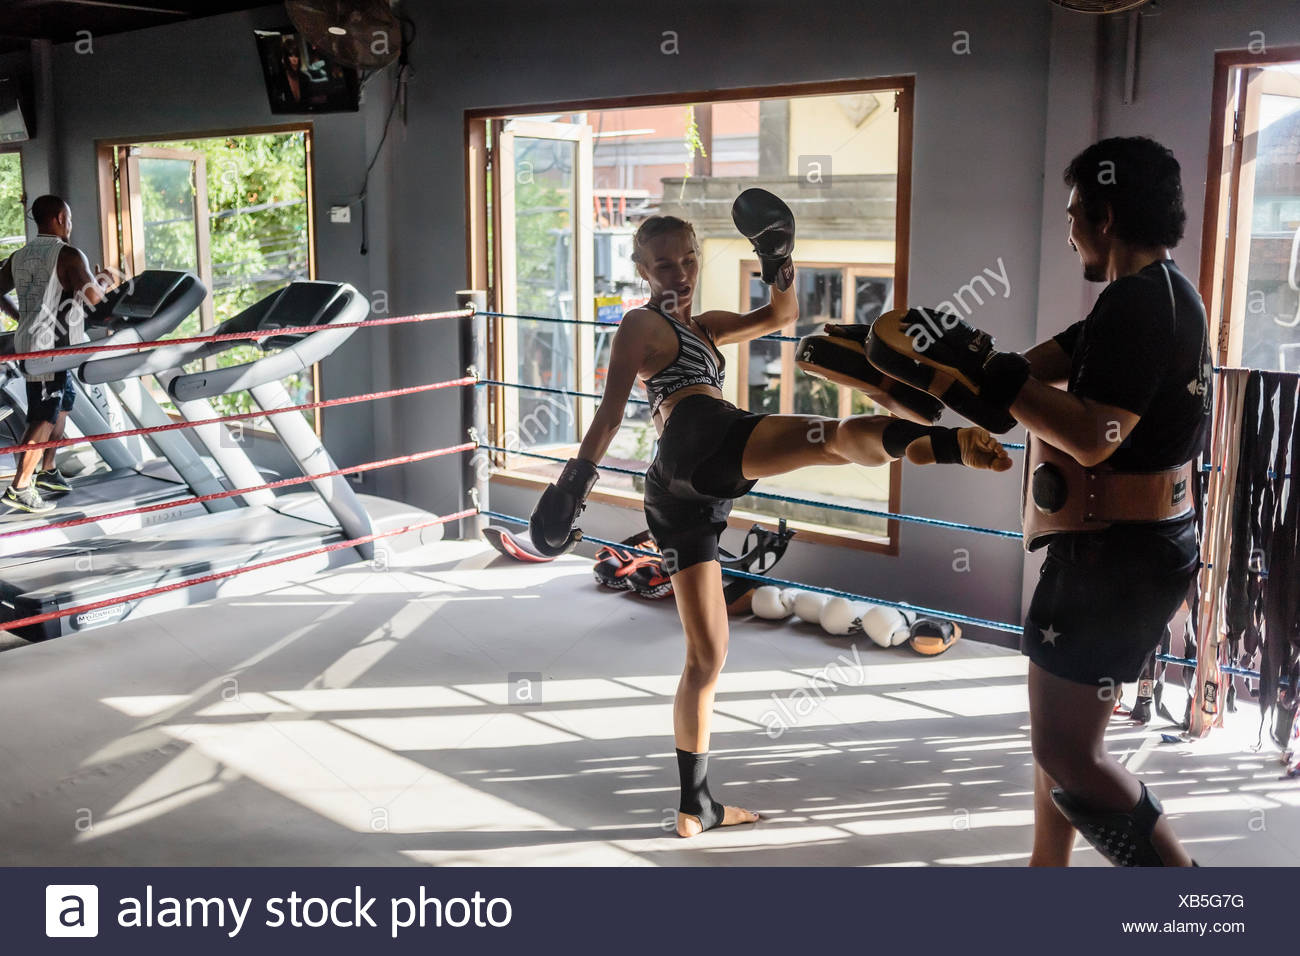 Photograph of young woman kicking while practicing kickboxing with coach, Seminyak, Bali, Indonesia - Stock Image